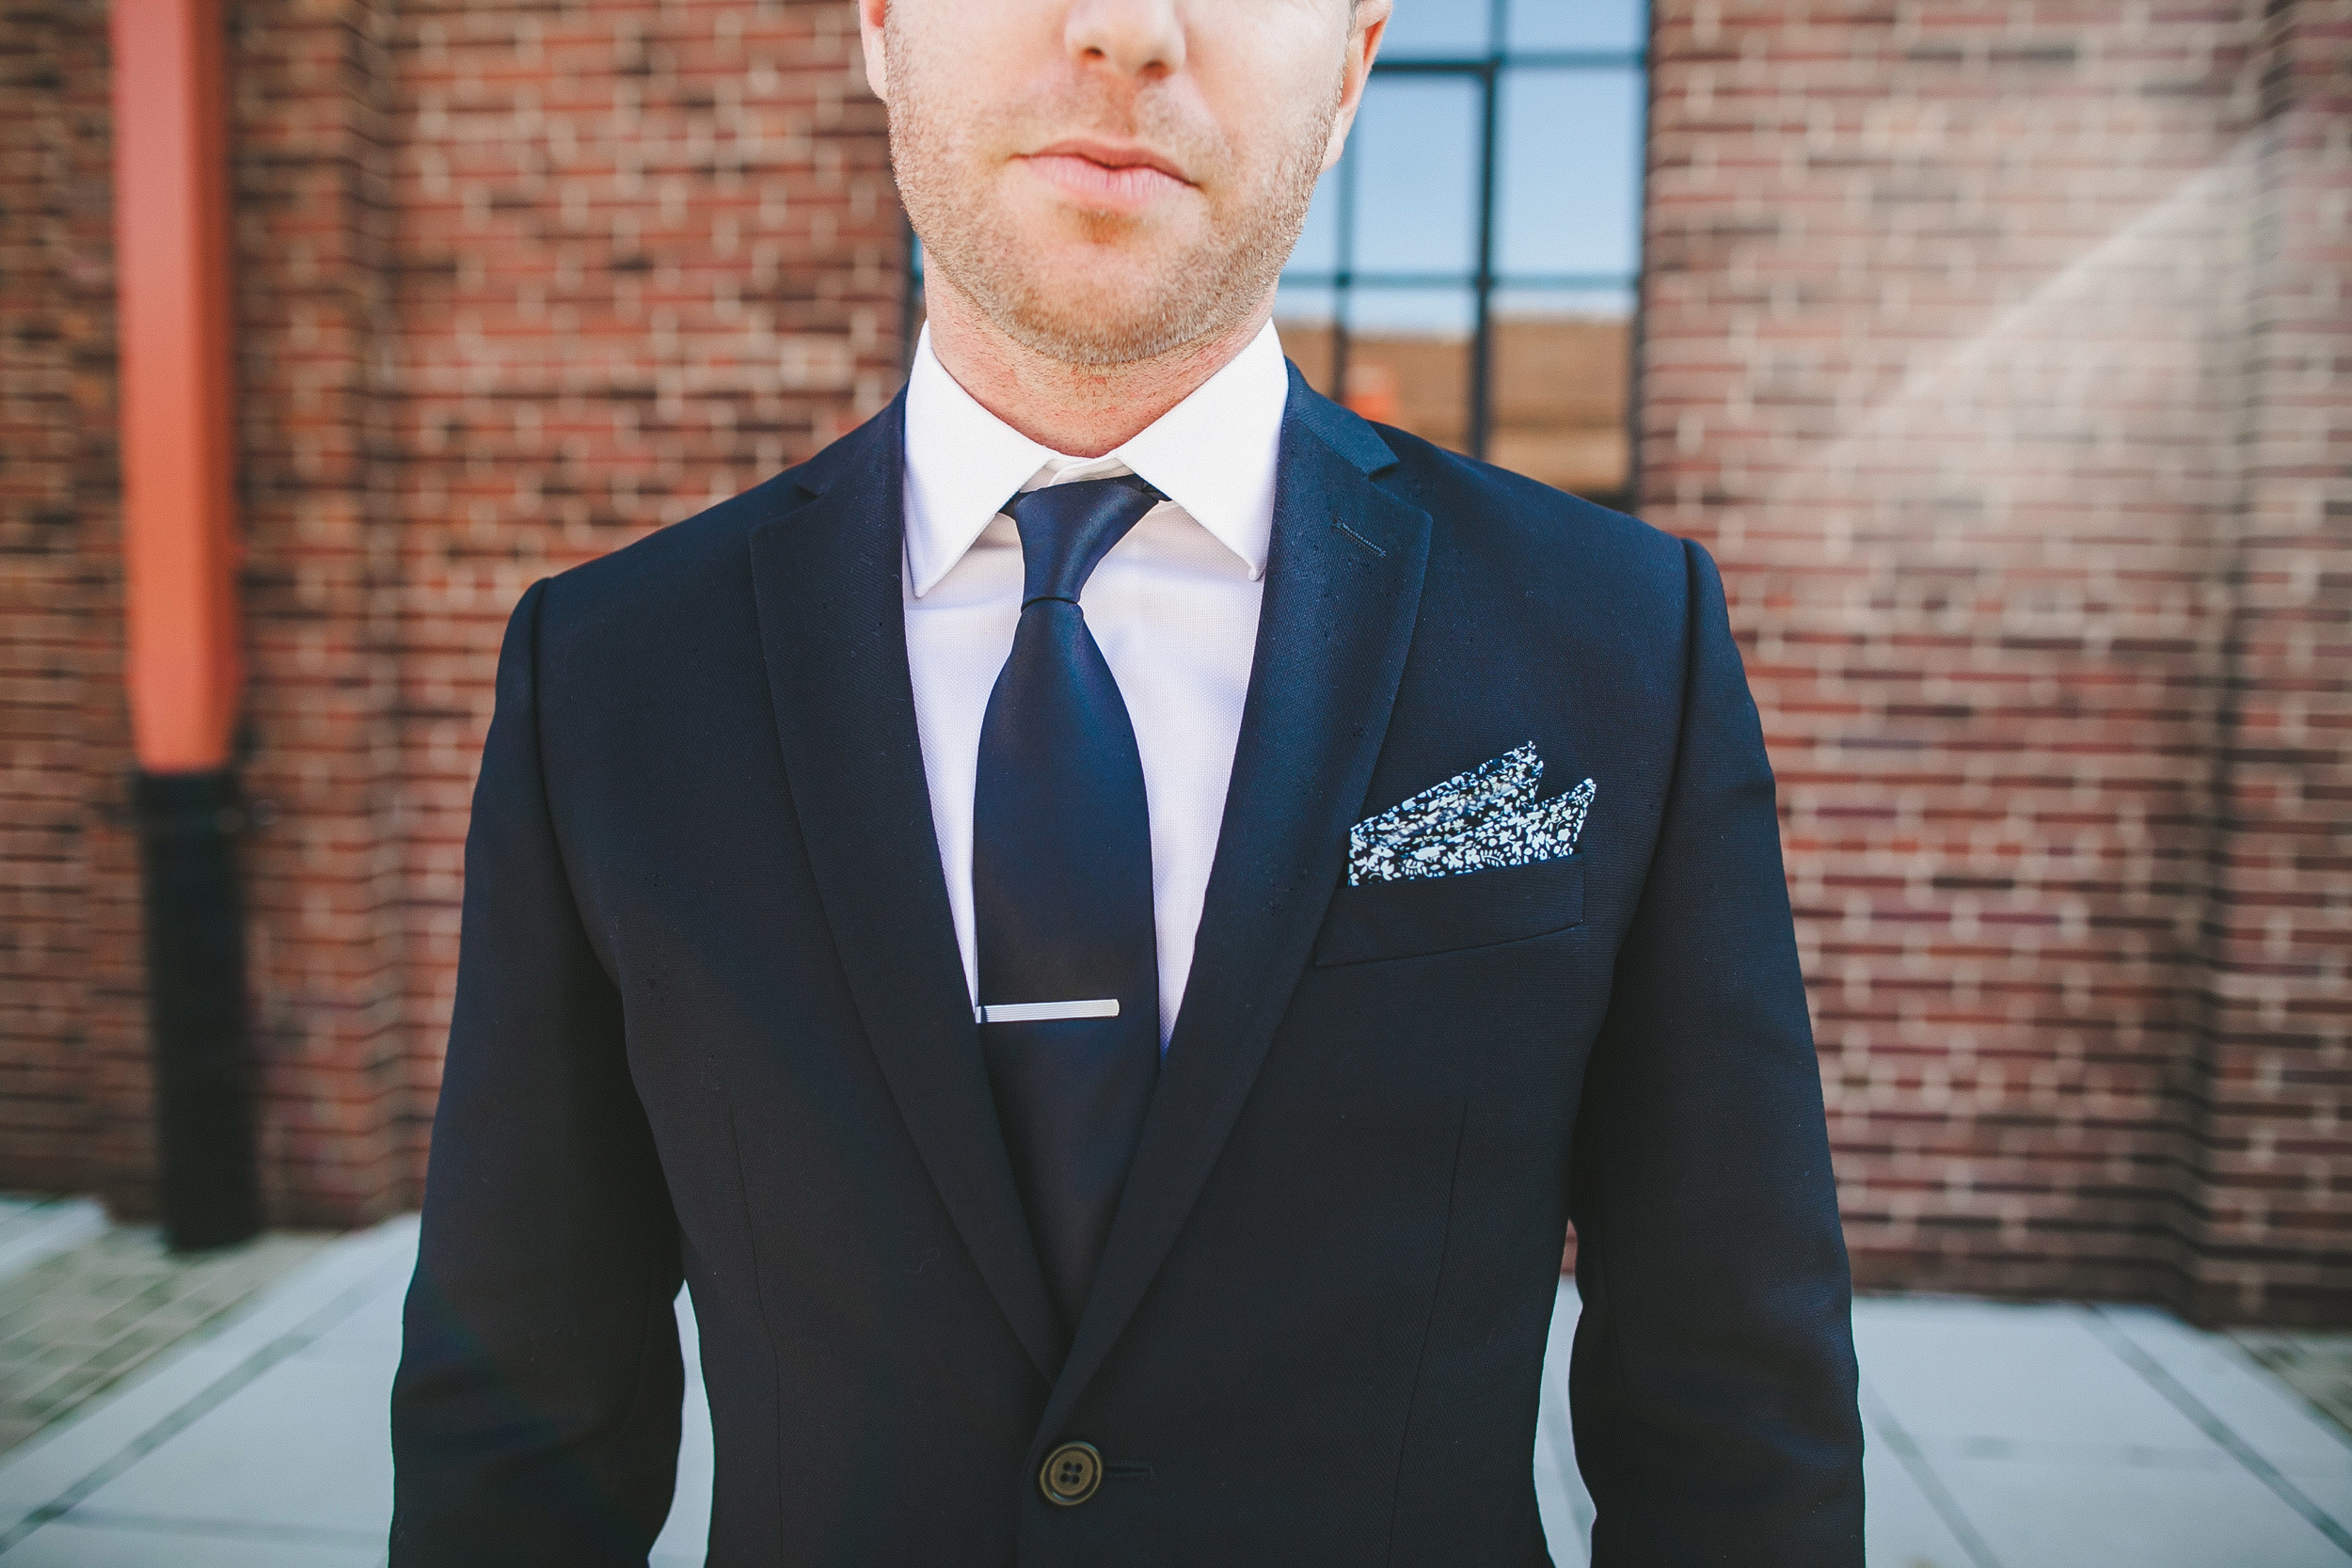 Jared_Kneale_Wedding_Suit